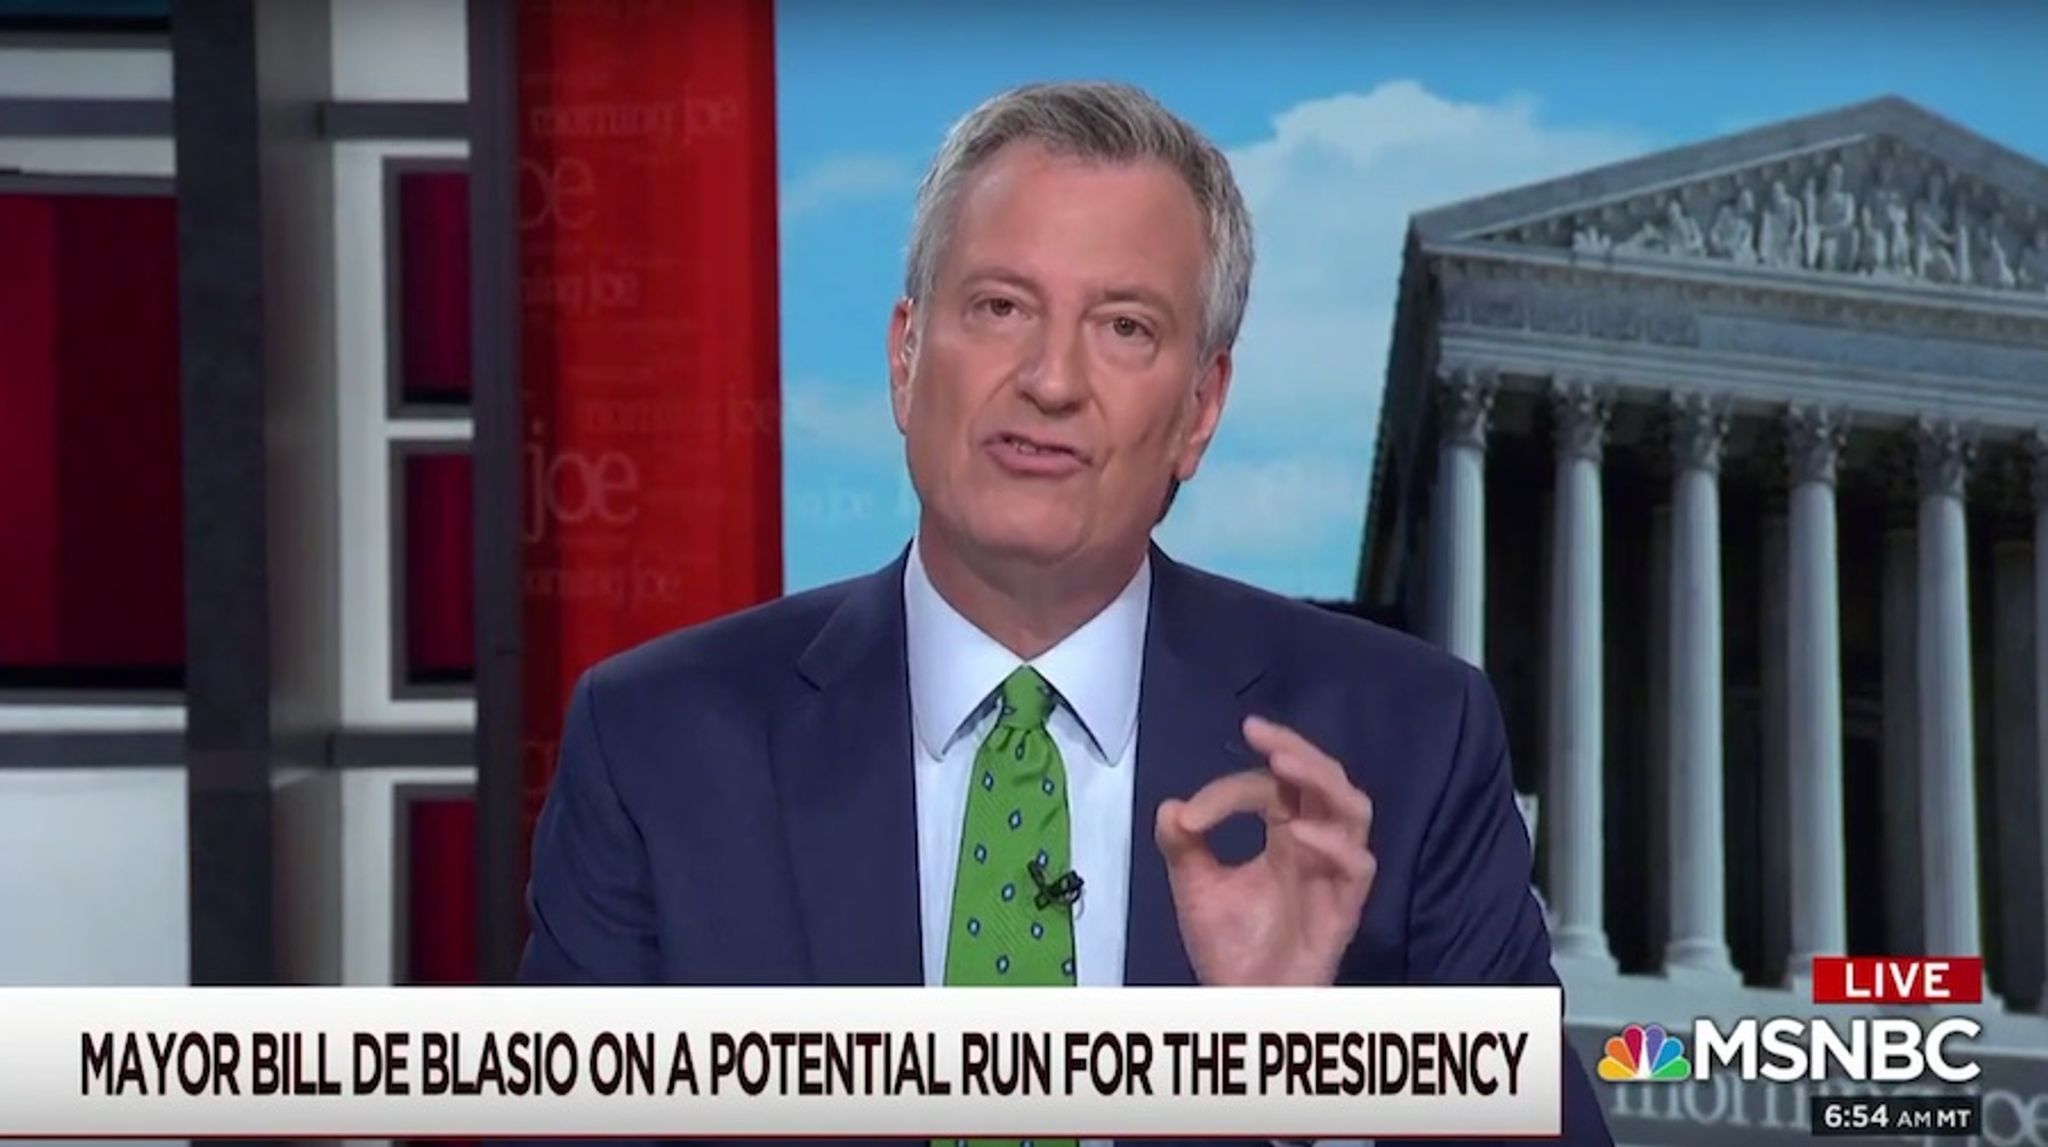 Bill de Blasio: Big Apple will go small, ditch 'classic' skyscrapers in NYC's own 'Green New Deal'